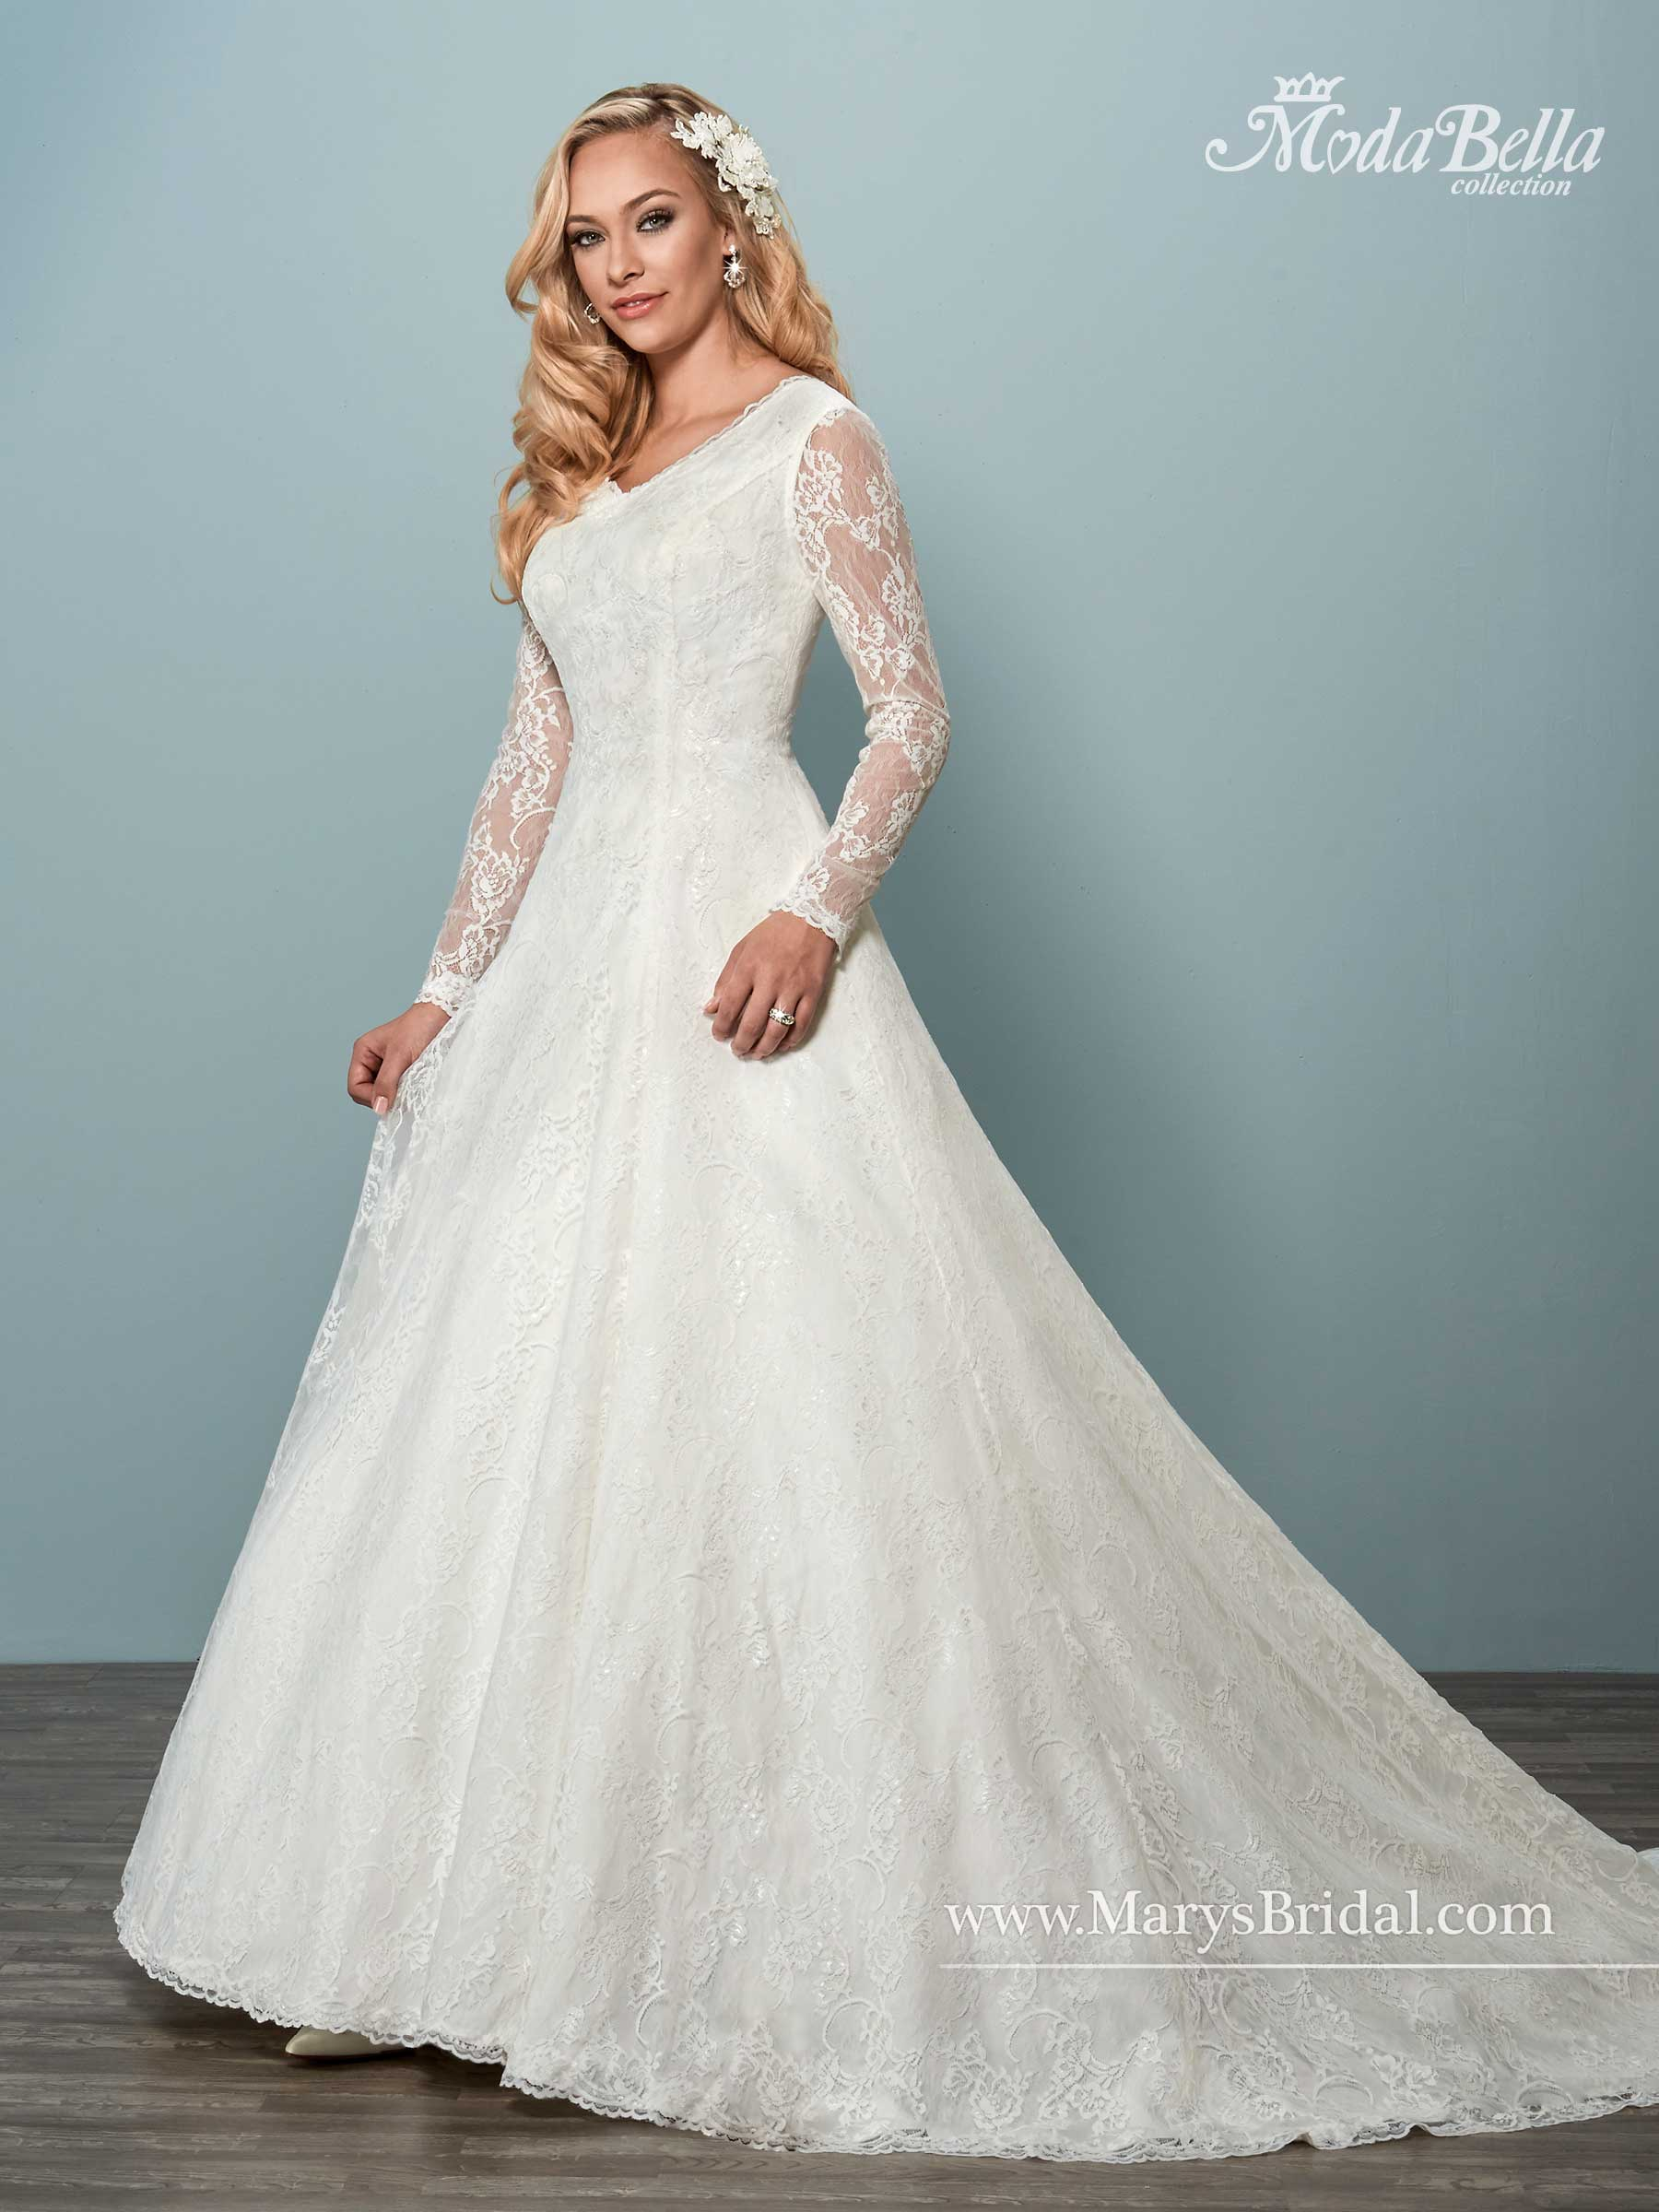 Moda Bella Bridal Dresses | Style - 3Y620 in Ivory or White Color